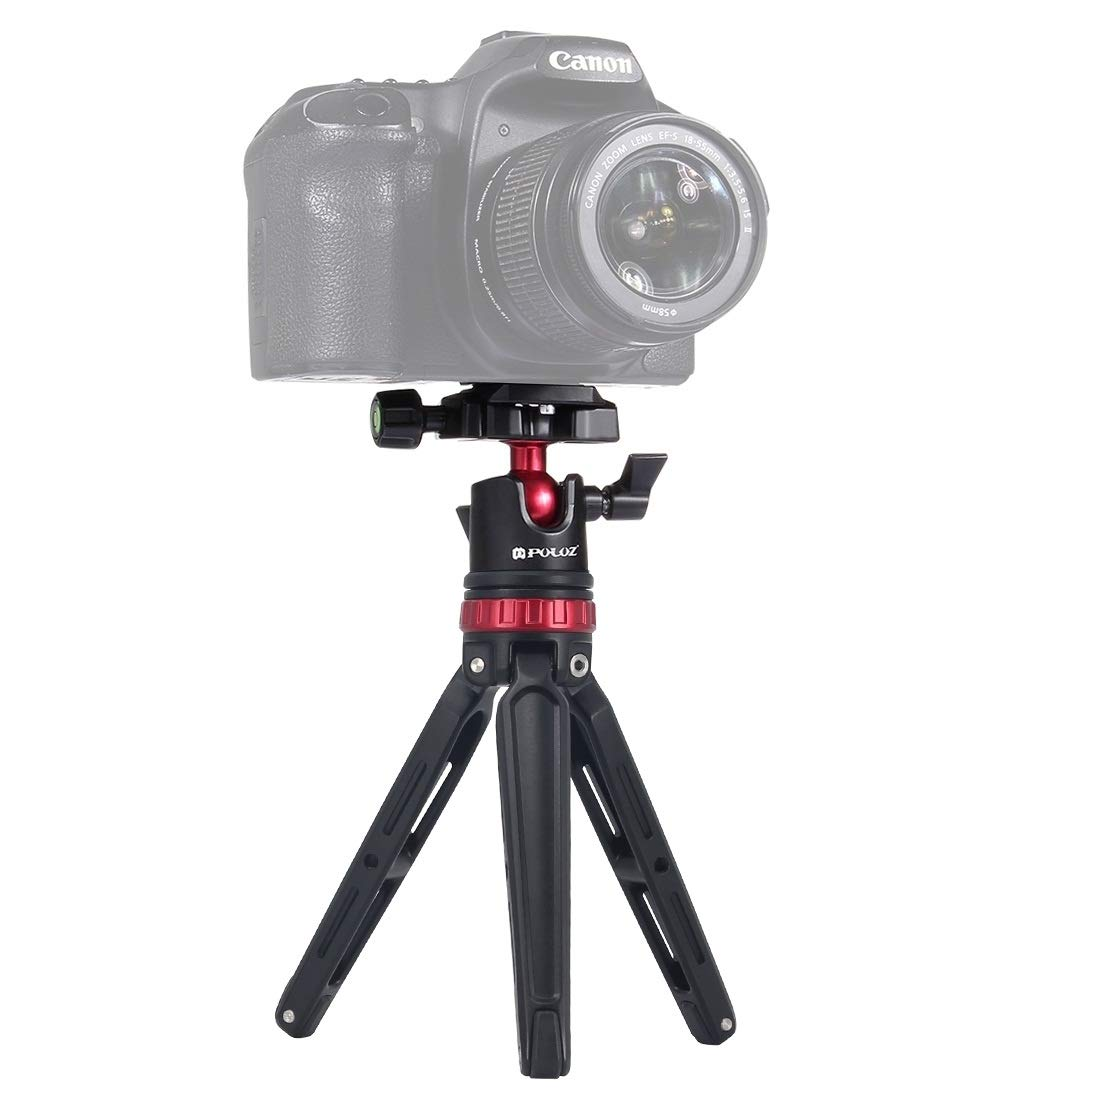 Camera Pocket Mini Adjustable Metal Desktop Tripod Mount with 360 Degree Ball Head for DSLR & Digital Cameras, Adjustable Height: 11-20.2cm(Red) Lighweight and Portable (Color : Red) by JUNXI